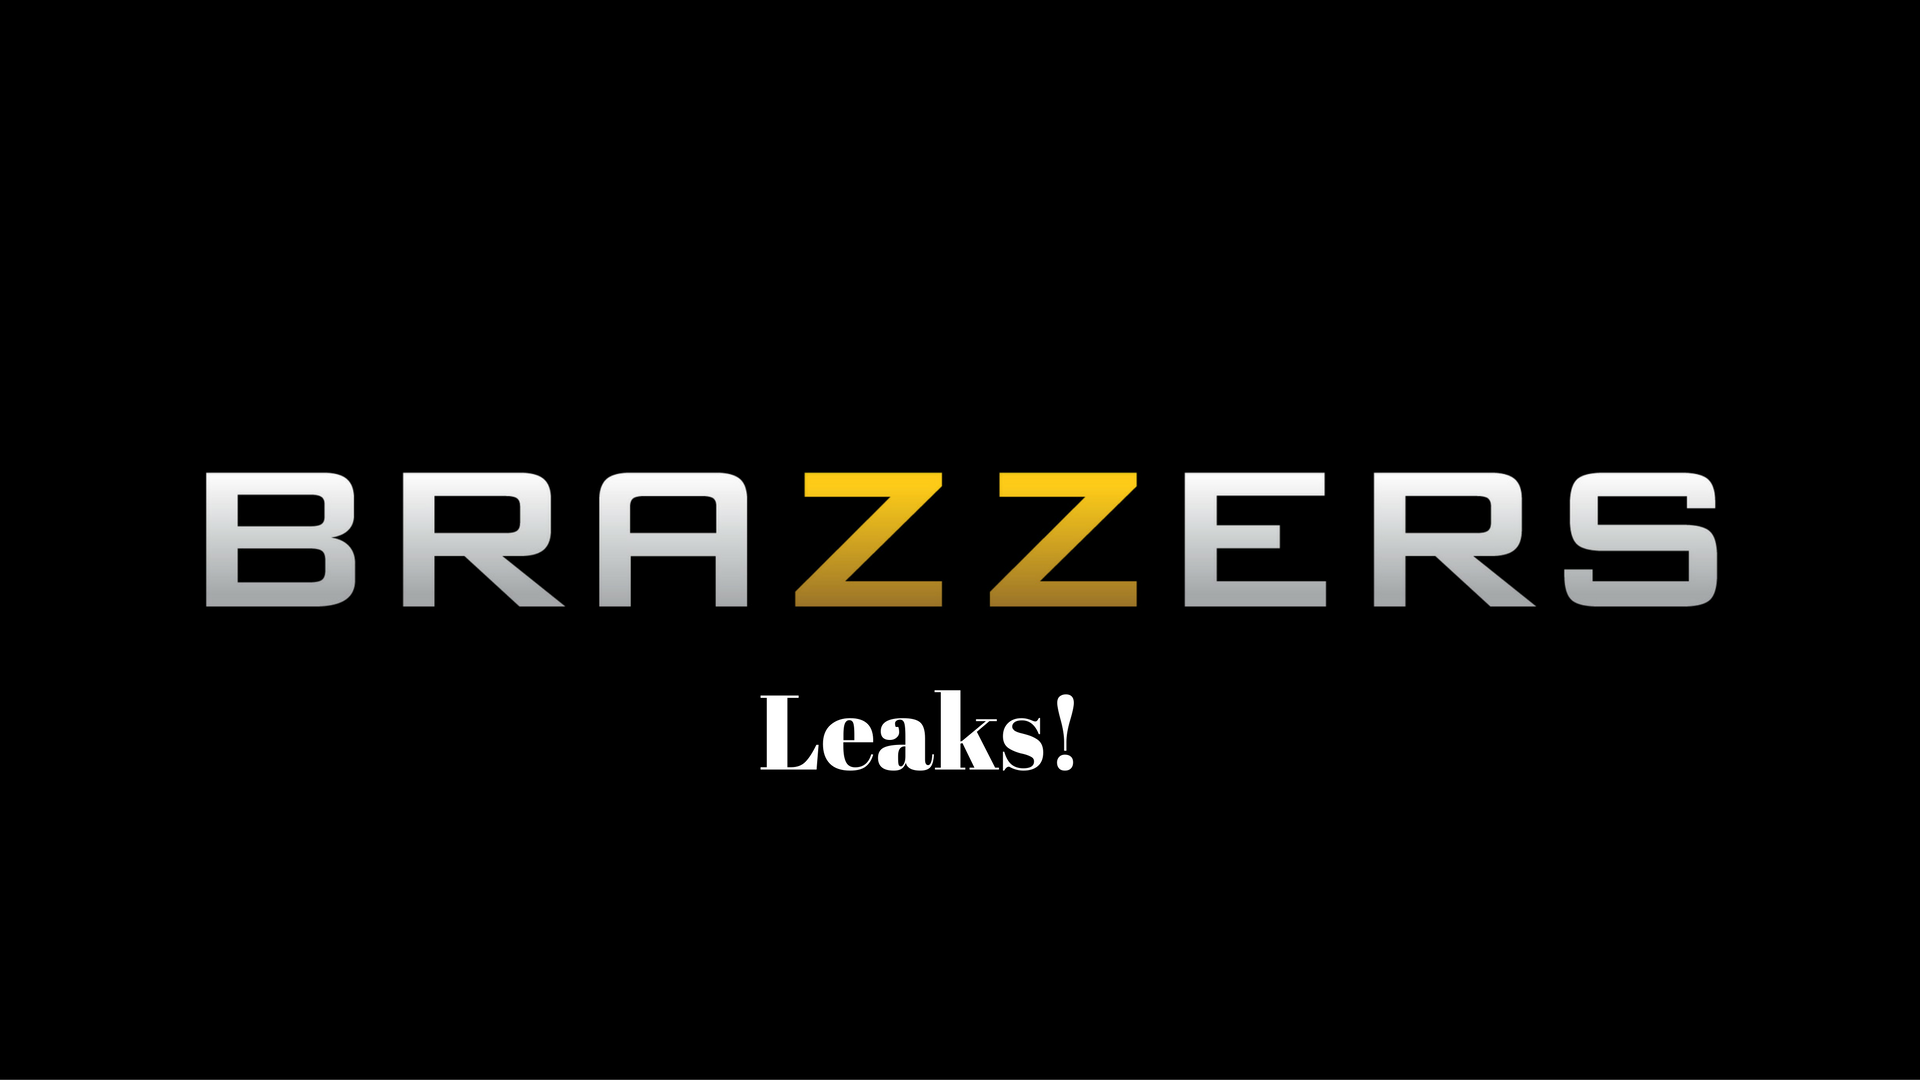 Brazzers Hacked – Close to a Million Users Affected